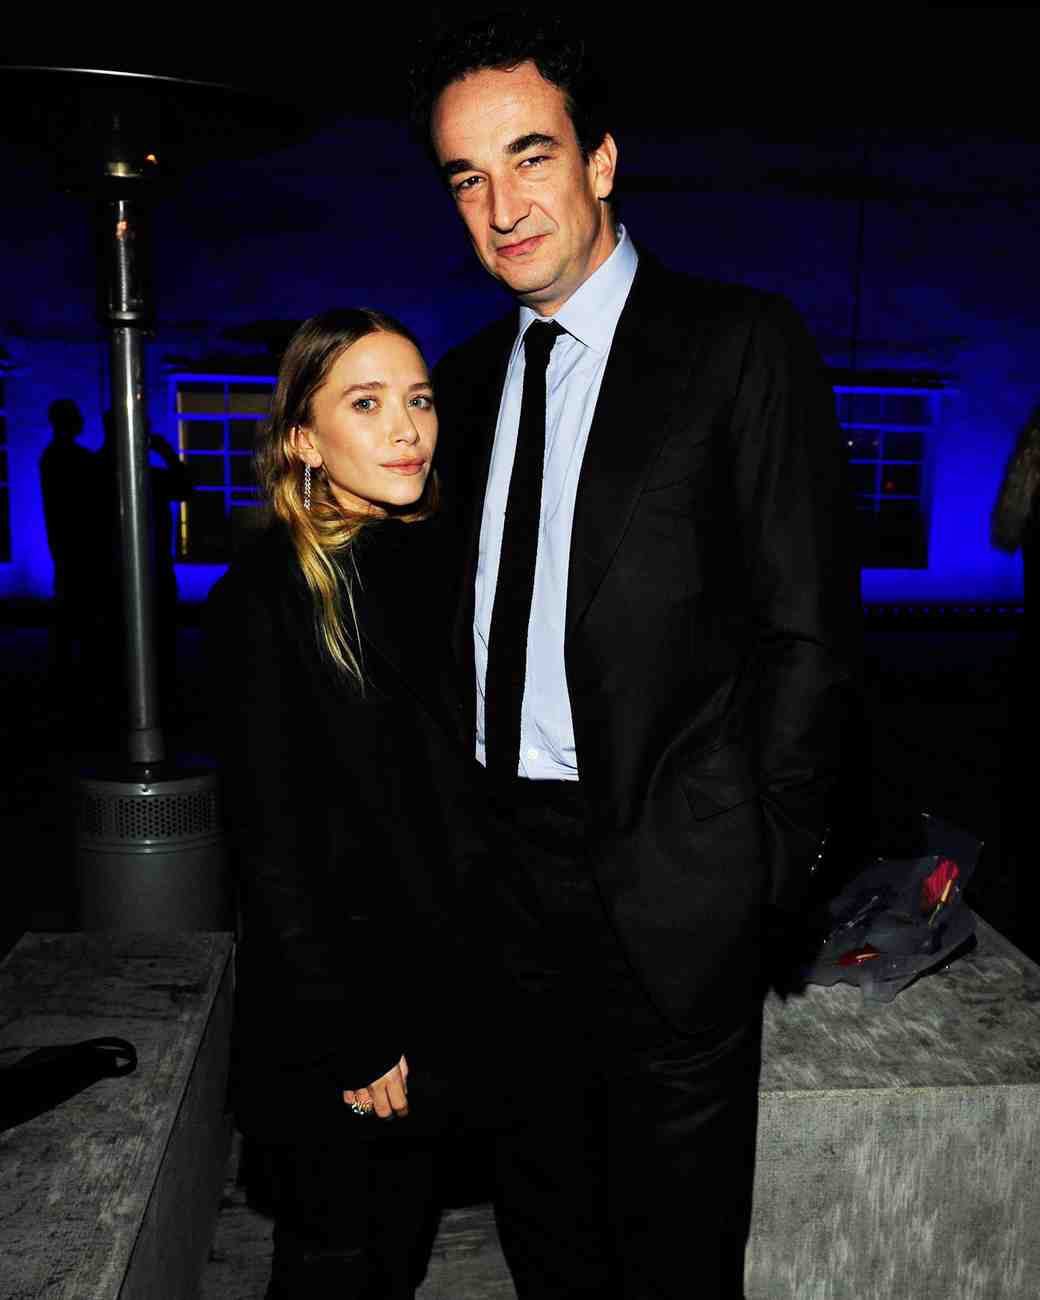 secret-celebrity-weddings-mk-olsen-olivier-sarkozy-0216.jpg